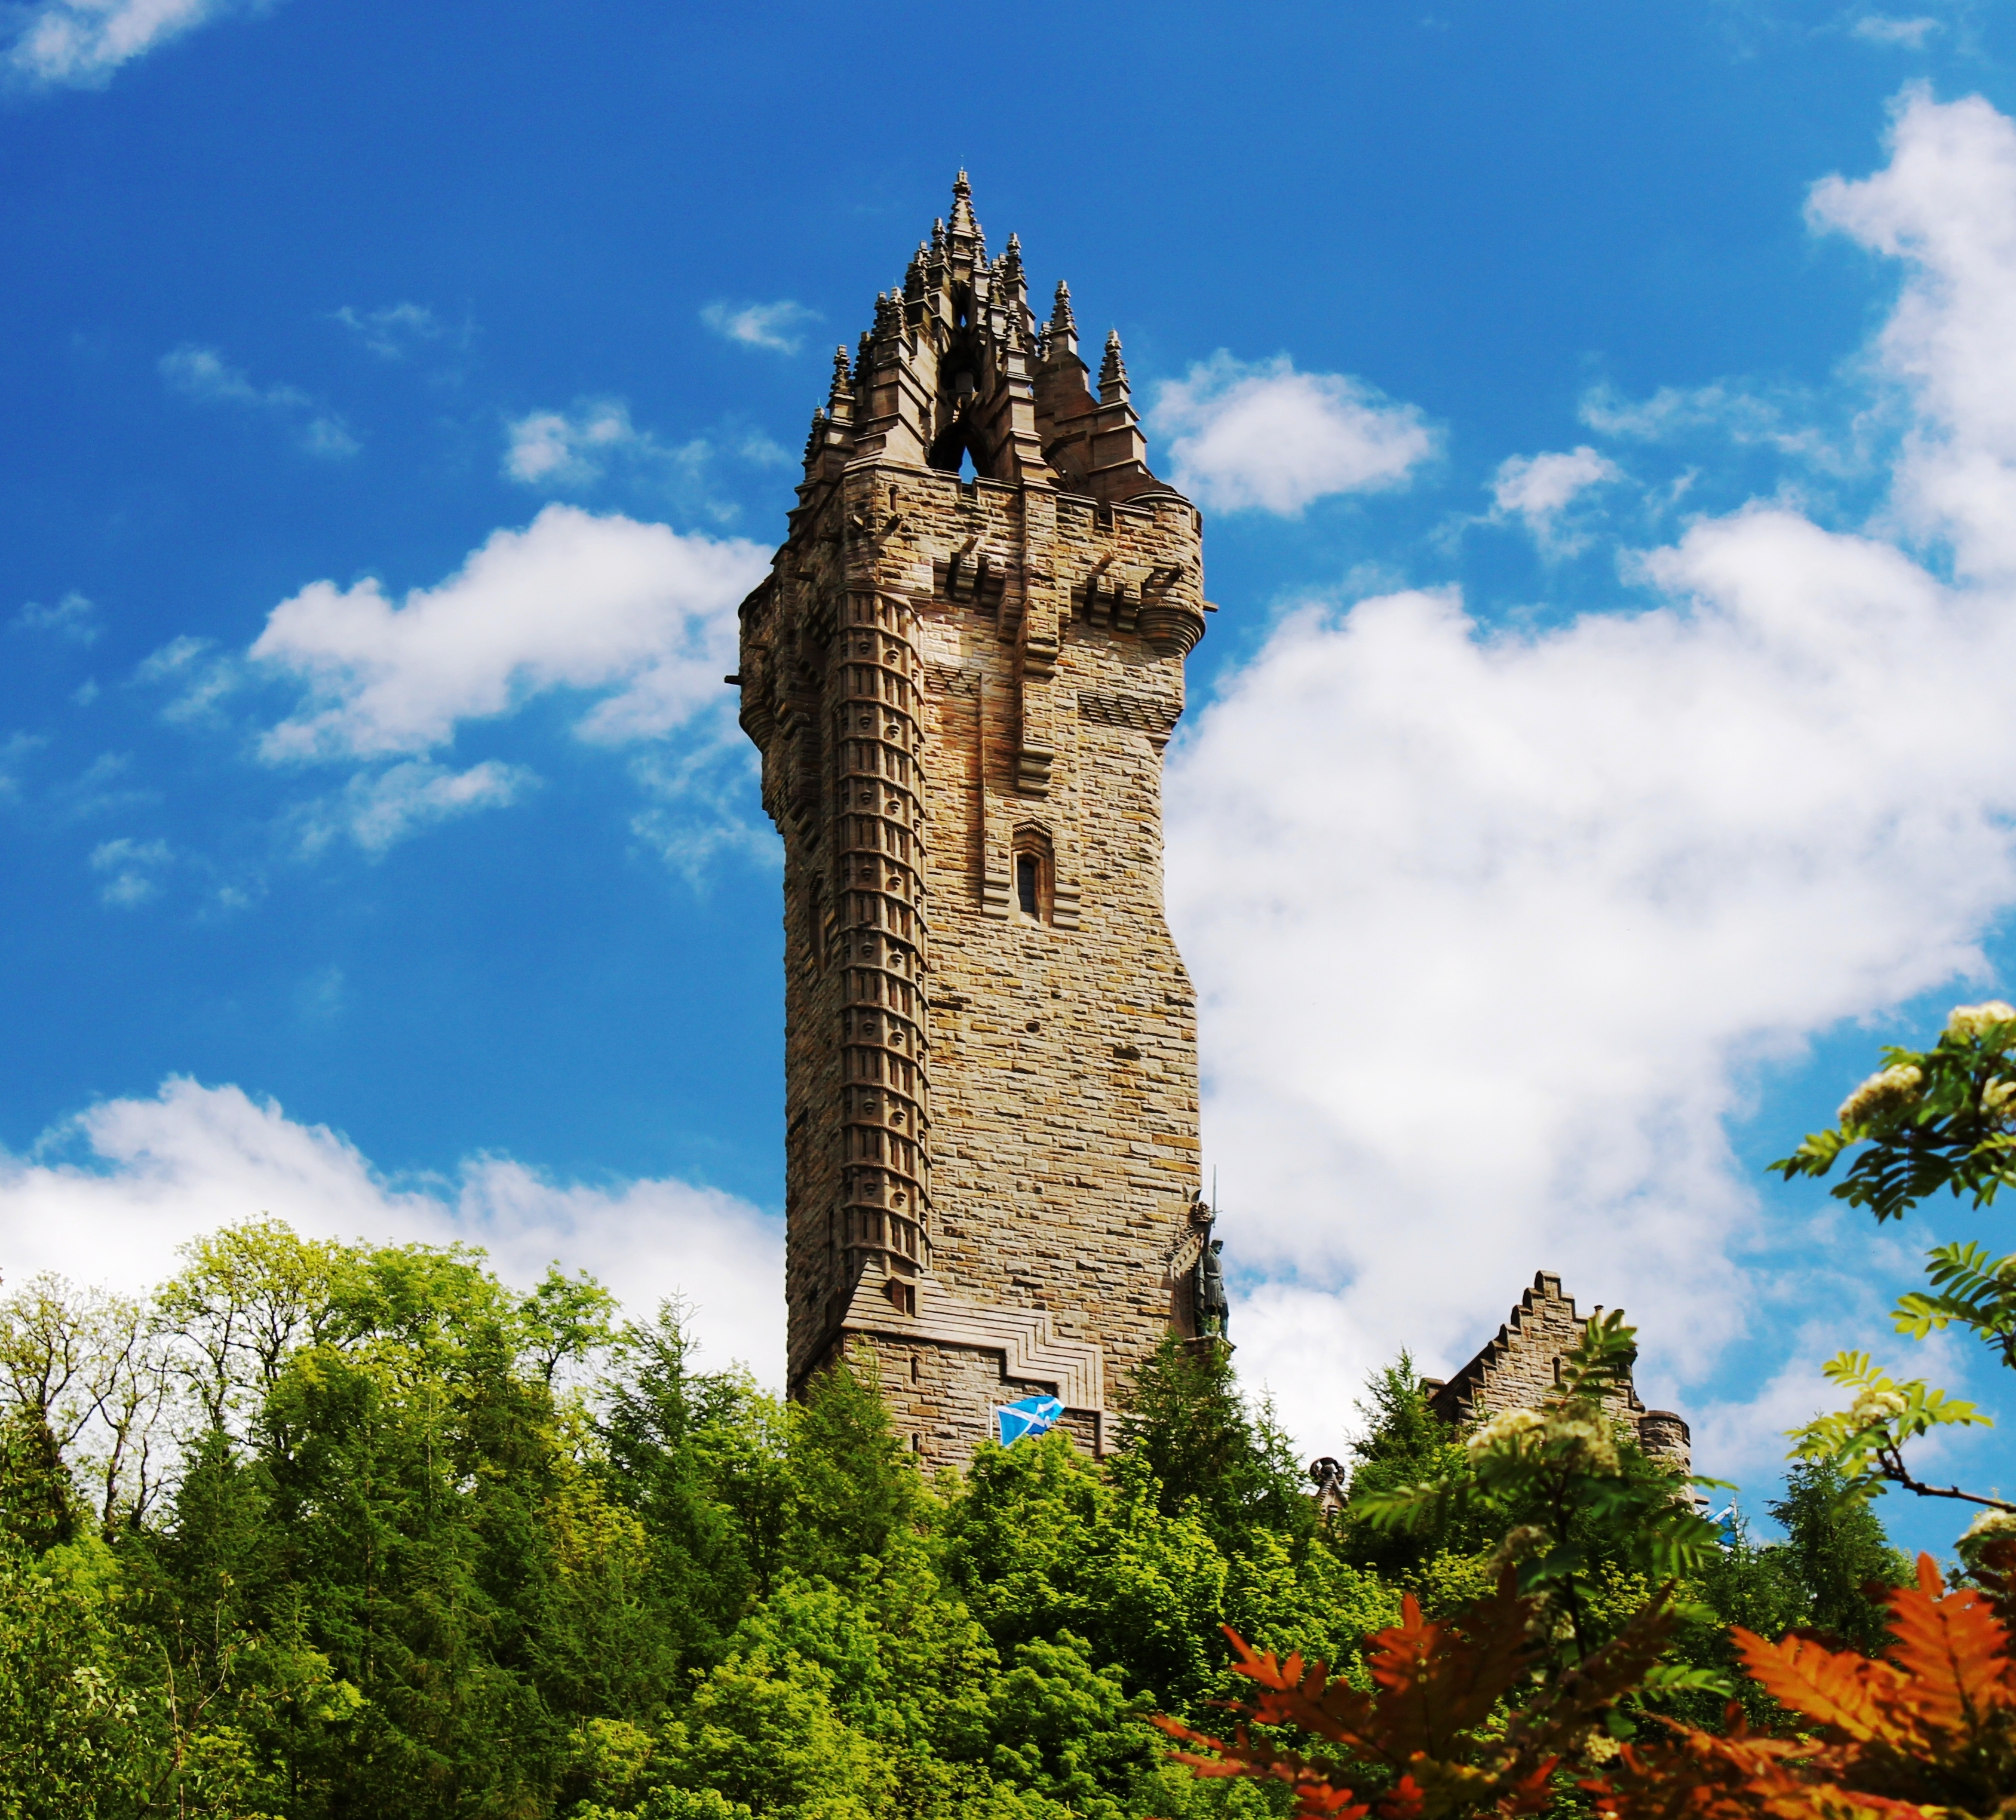 Step into spring at the Wallace Monument